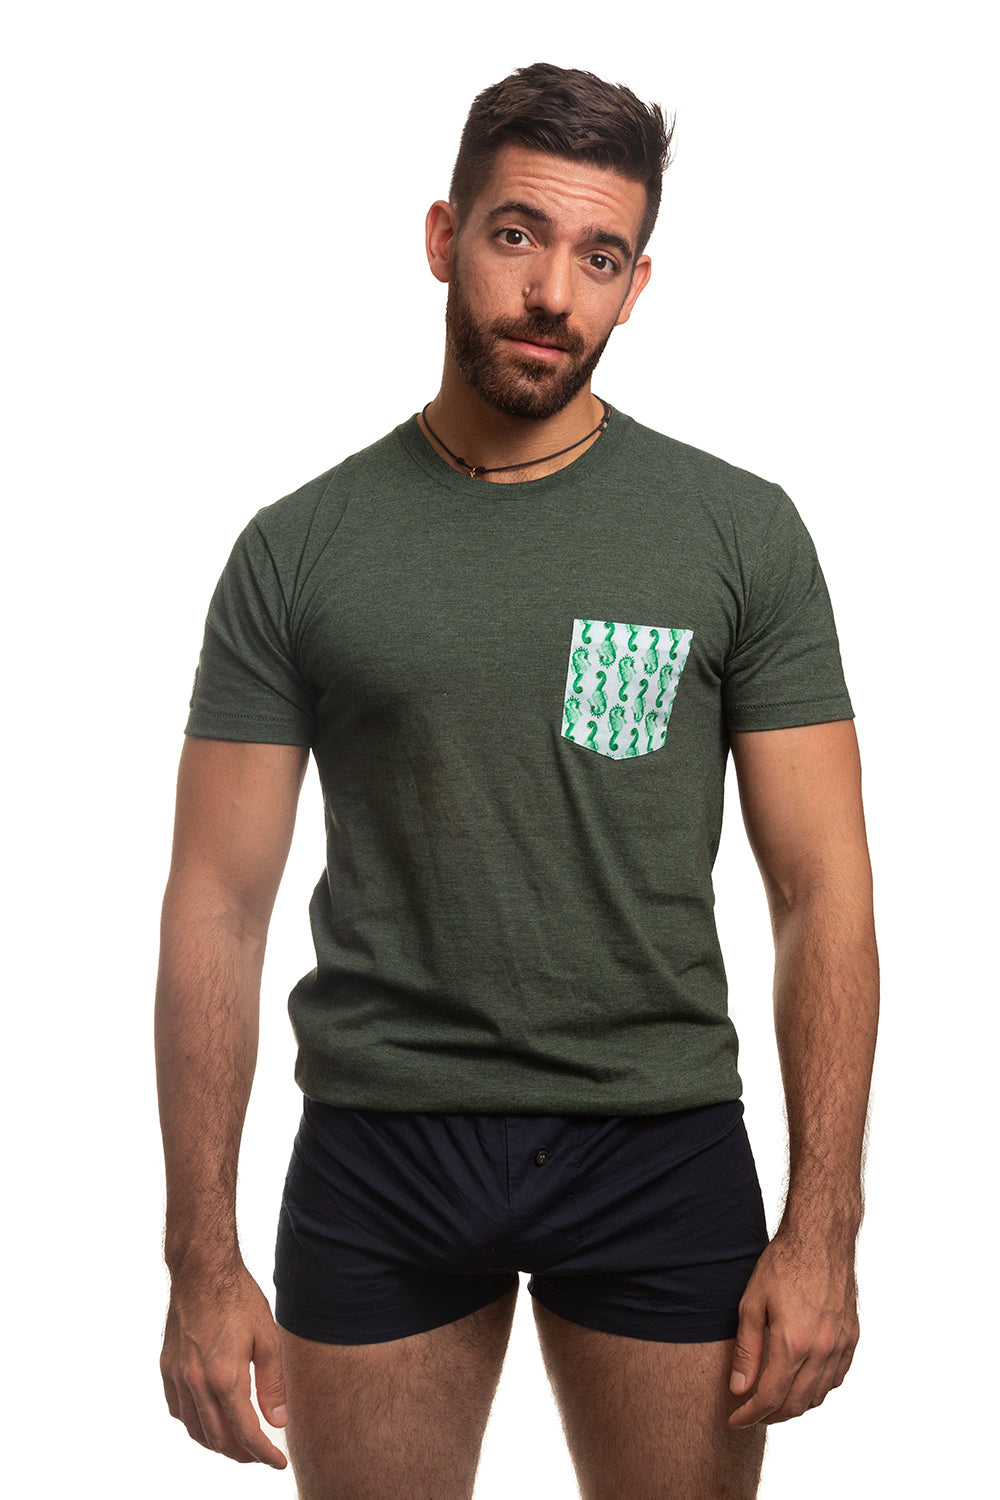 Green with Seahorse Print Pocket Tee Size XL Available